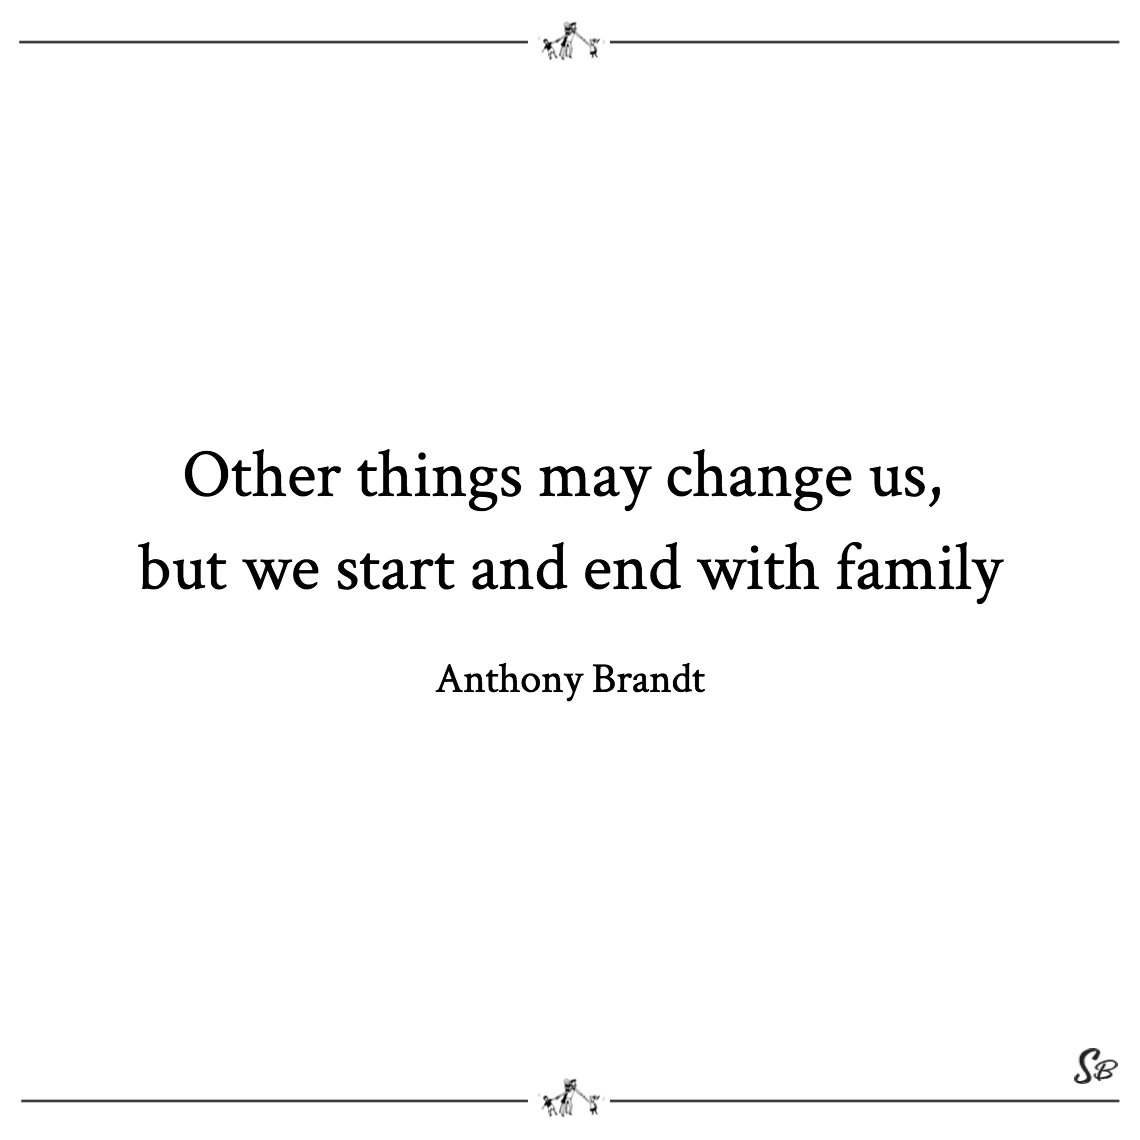 Other things may change us, but we start and end with family anthony brandt